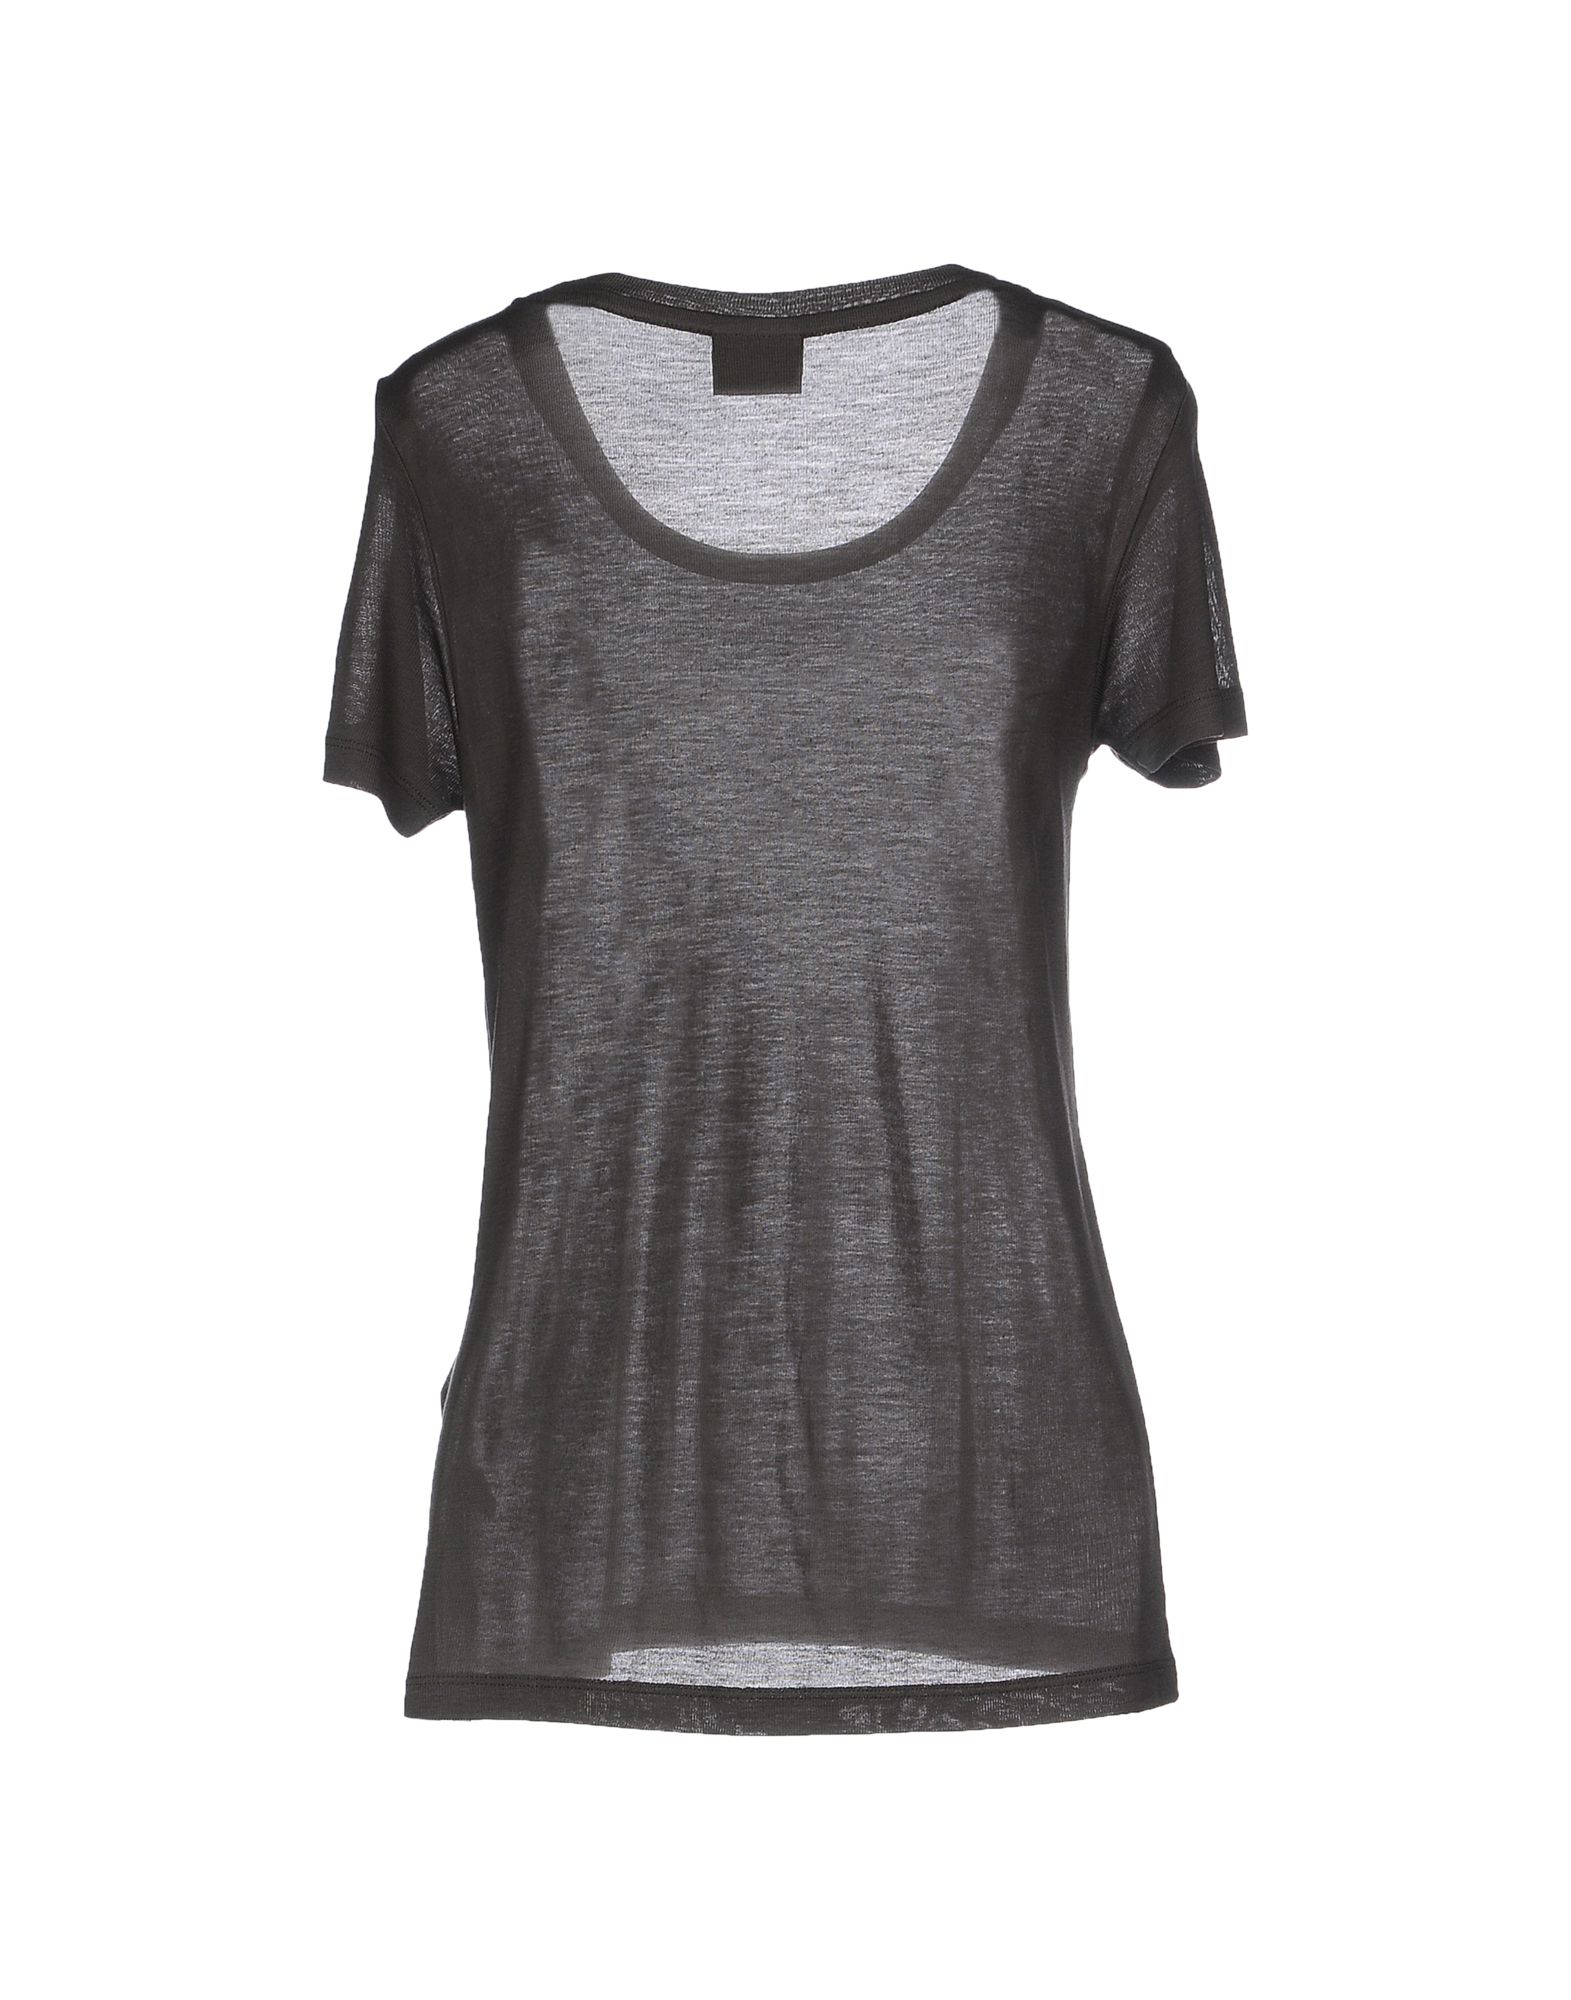 vero moda t shirt in gray lyst. Black Bedroom Furniture Sets. Home Design Ideas